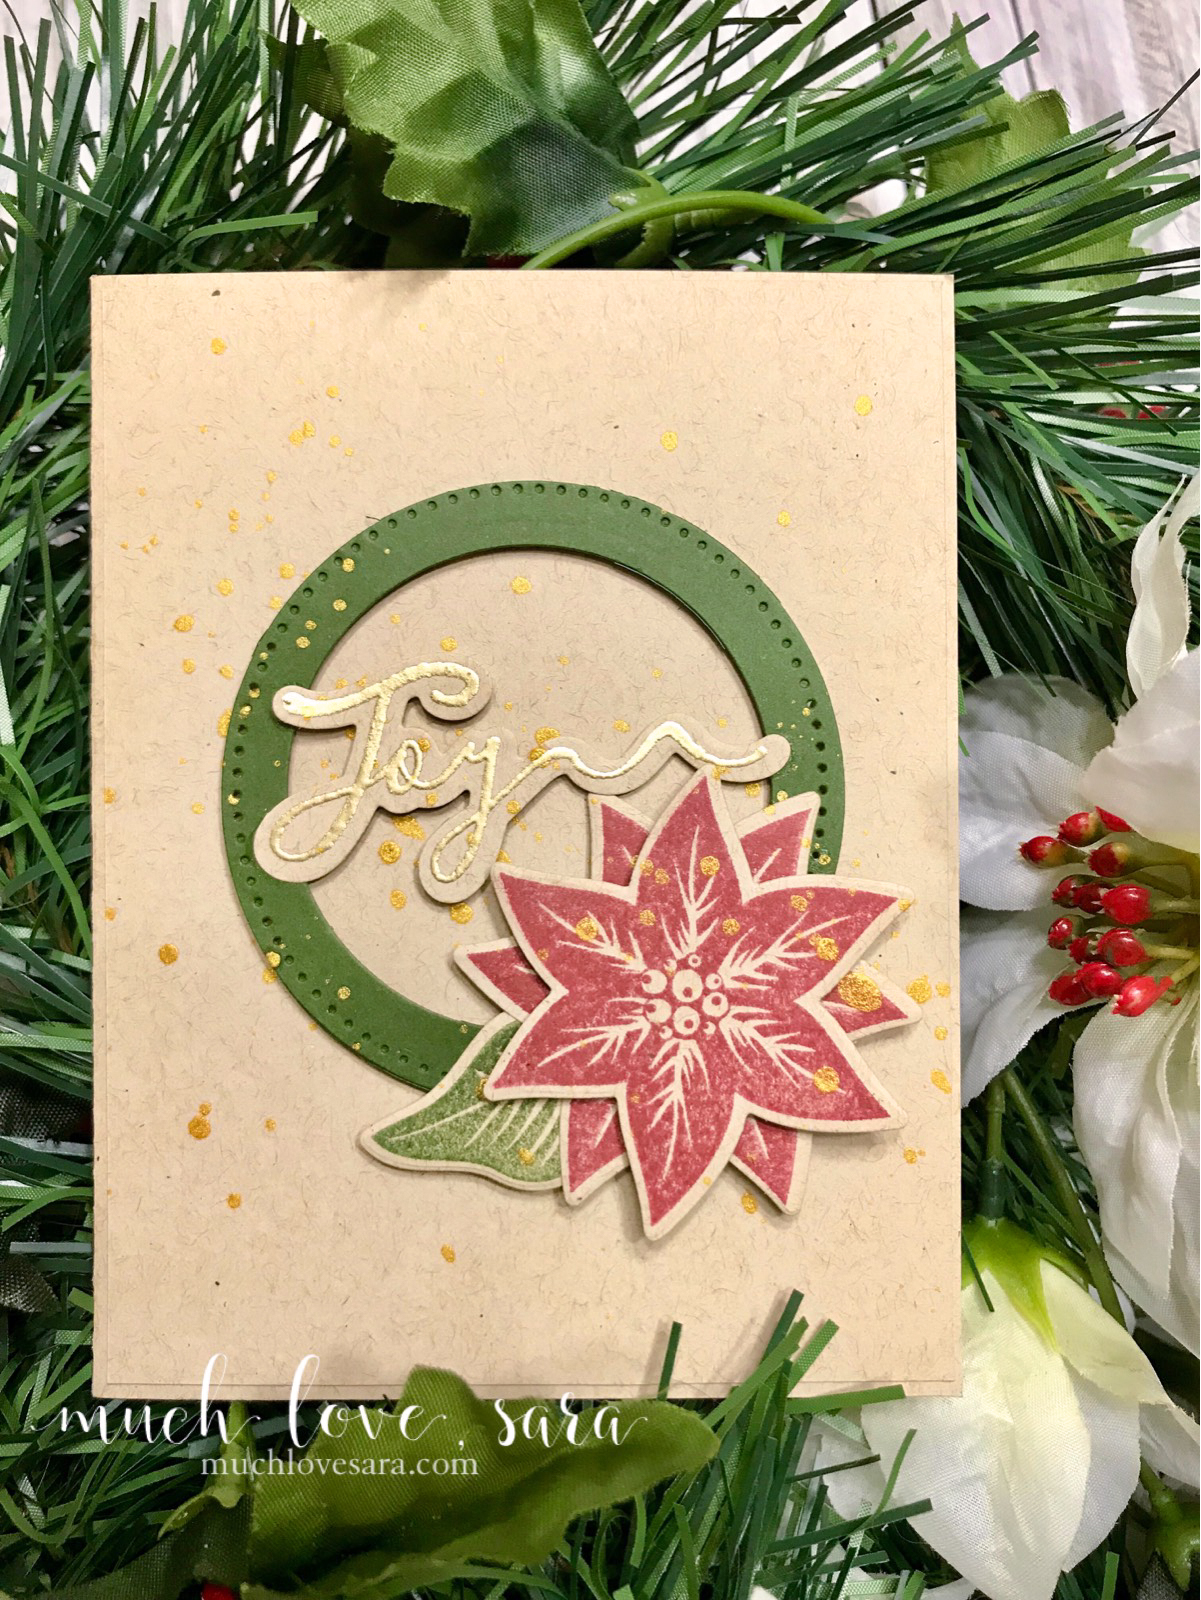 Much love, Sara | Cards & Paper projects made with love: Joyful ...